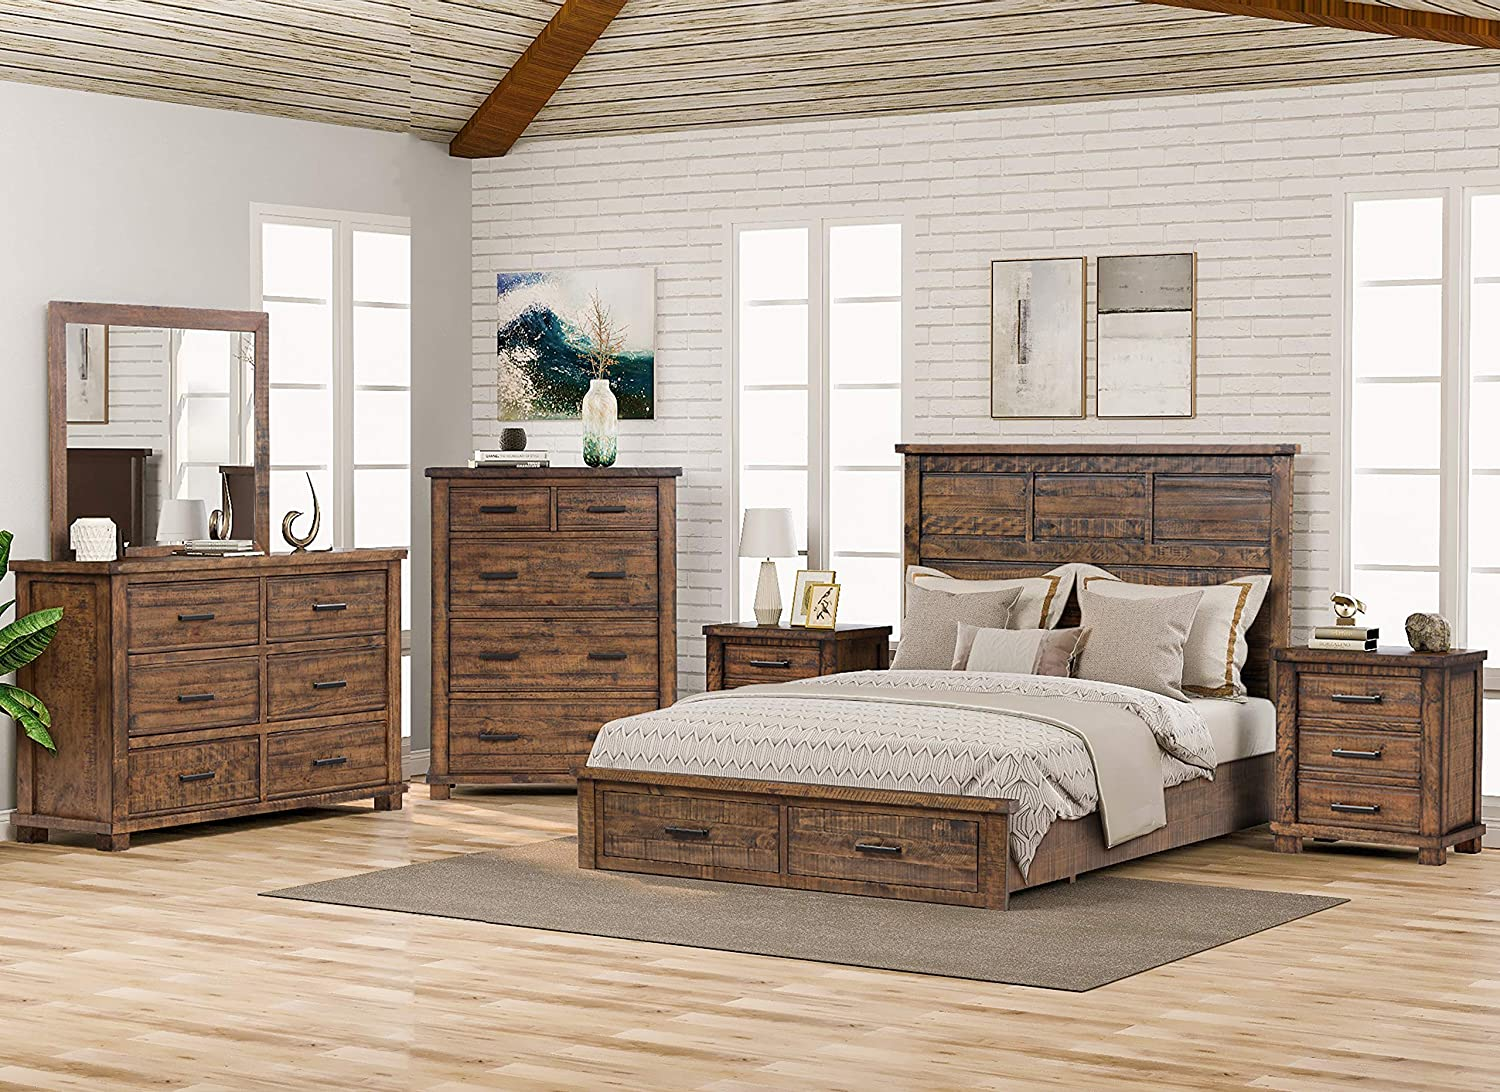 SOFTSEA 6 Piece Reclaimed Wood Queen Bedroom Furniture Set, Include Solid Pine Wood Storage Bed, 2 3-Drawers Nightstands, 6-Drawer Dresser and 5-Drawer Chest and Mirror, Rustic Style